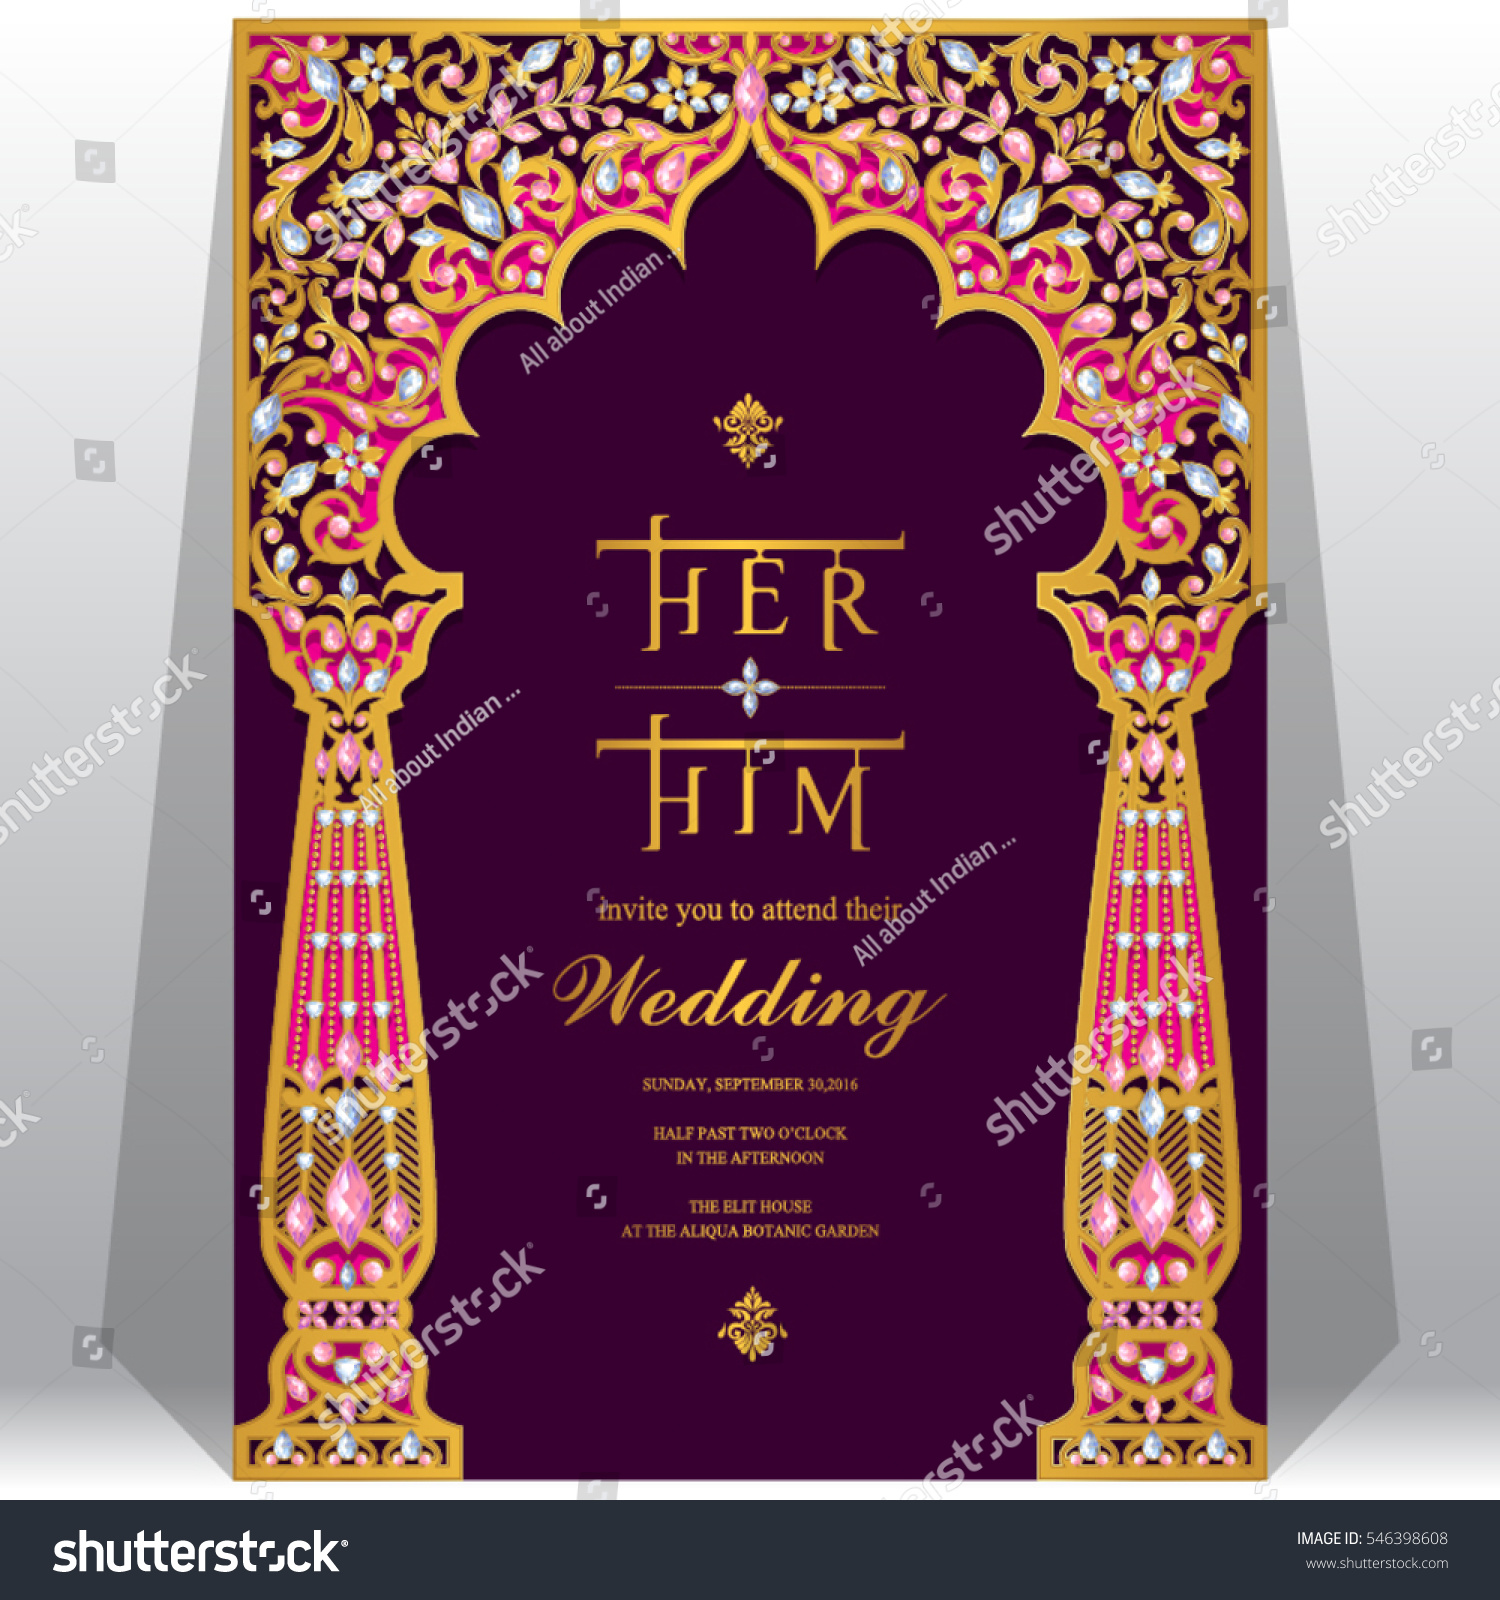 Indian Wedding Invitation Card Templates Gold Image Vectorielle De